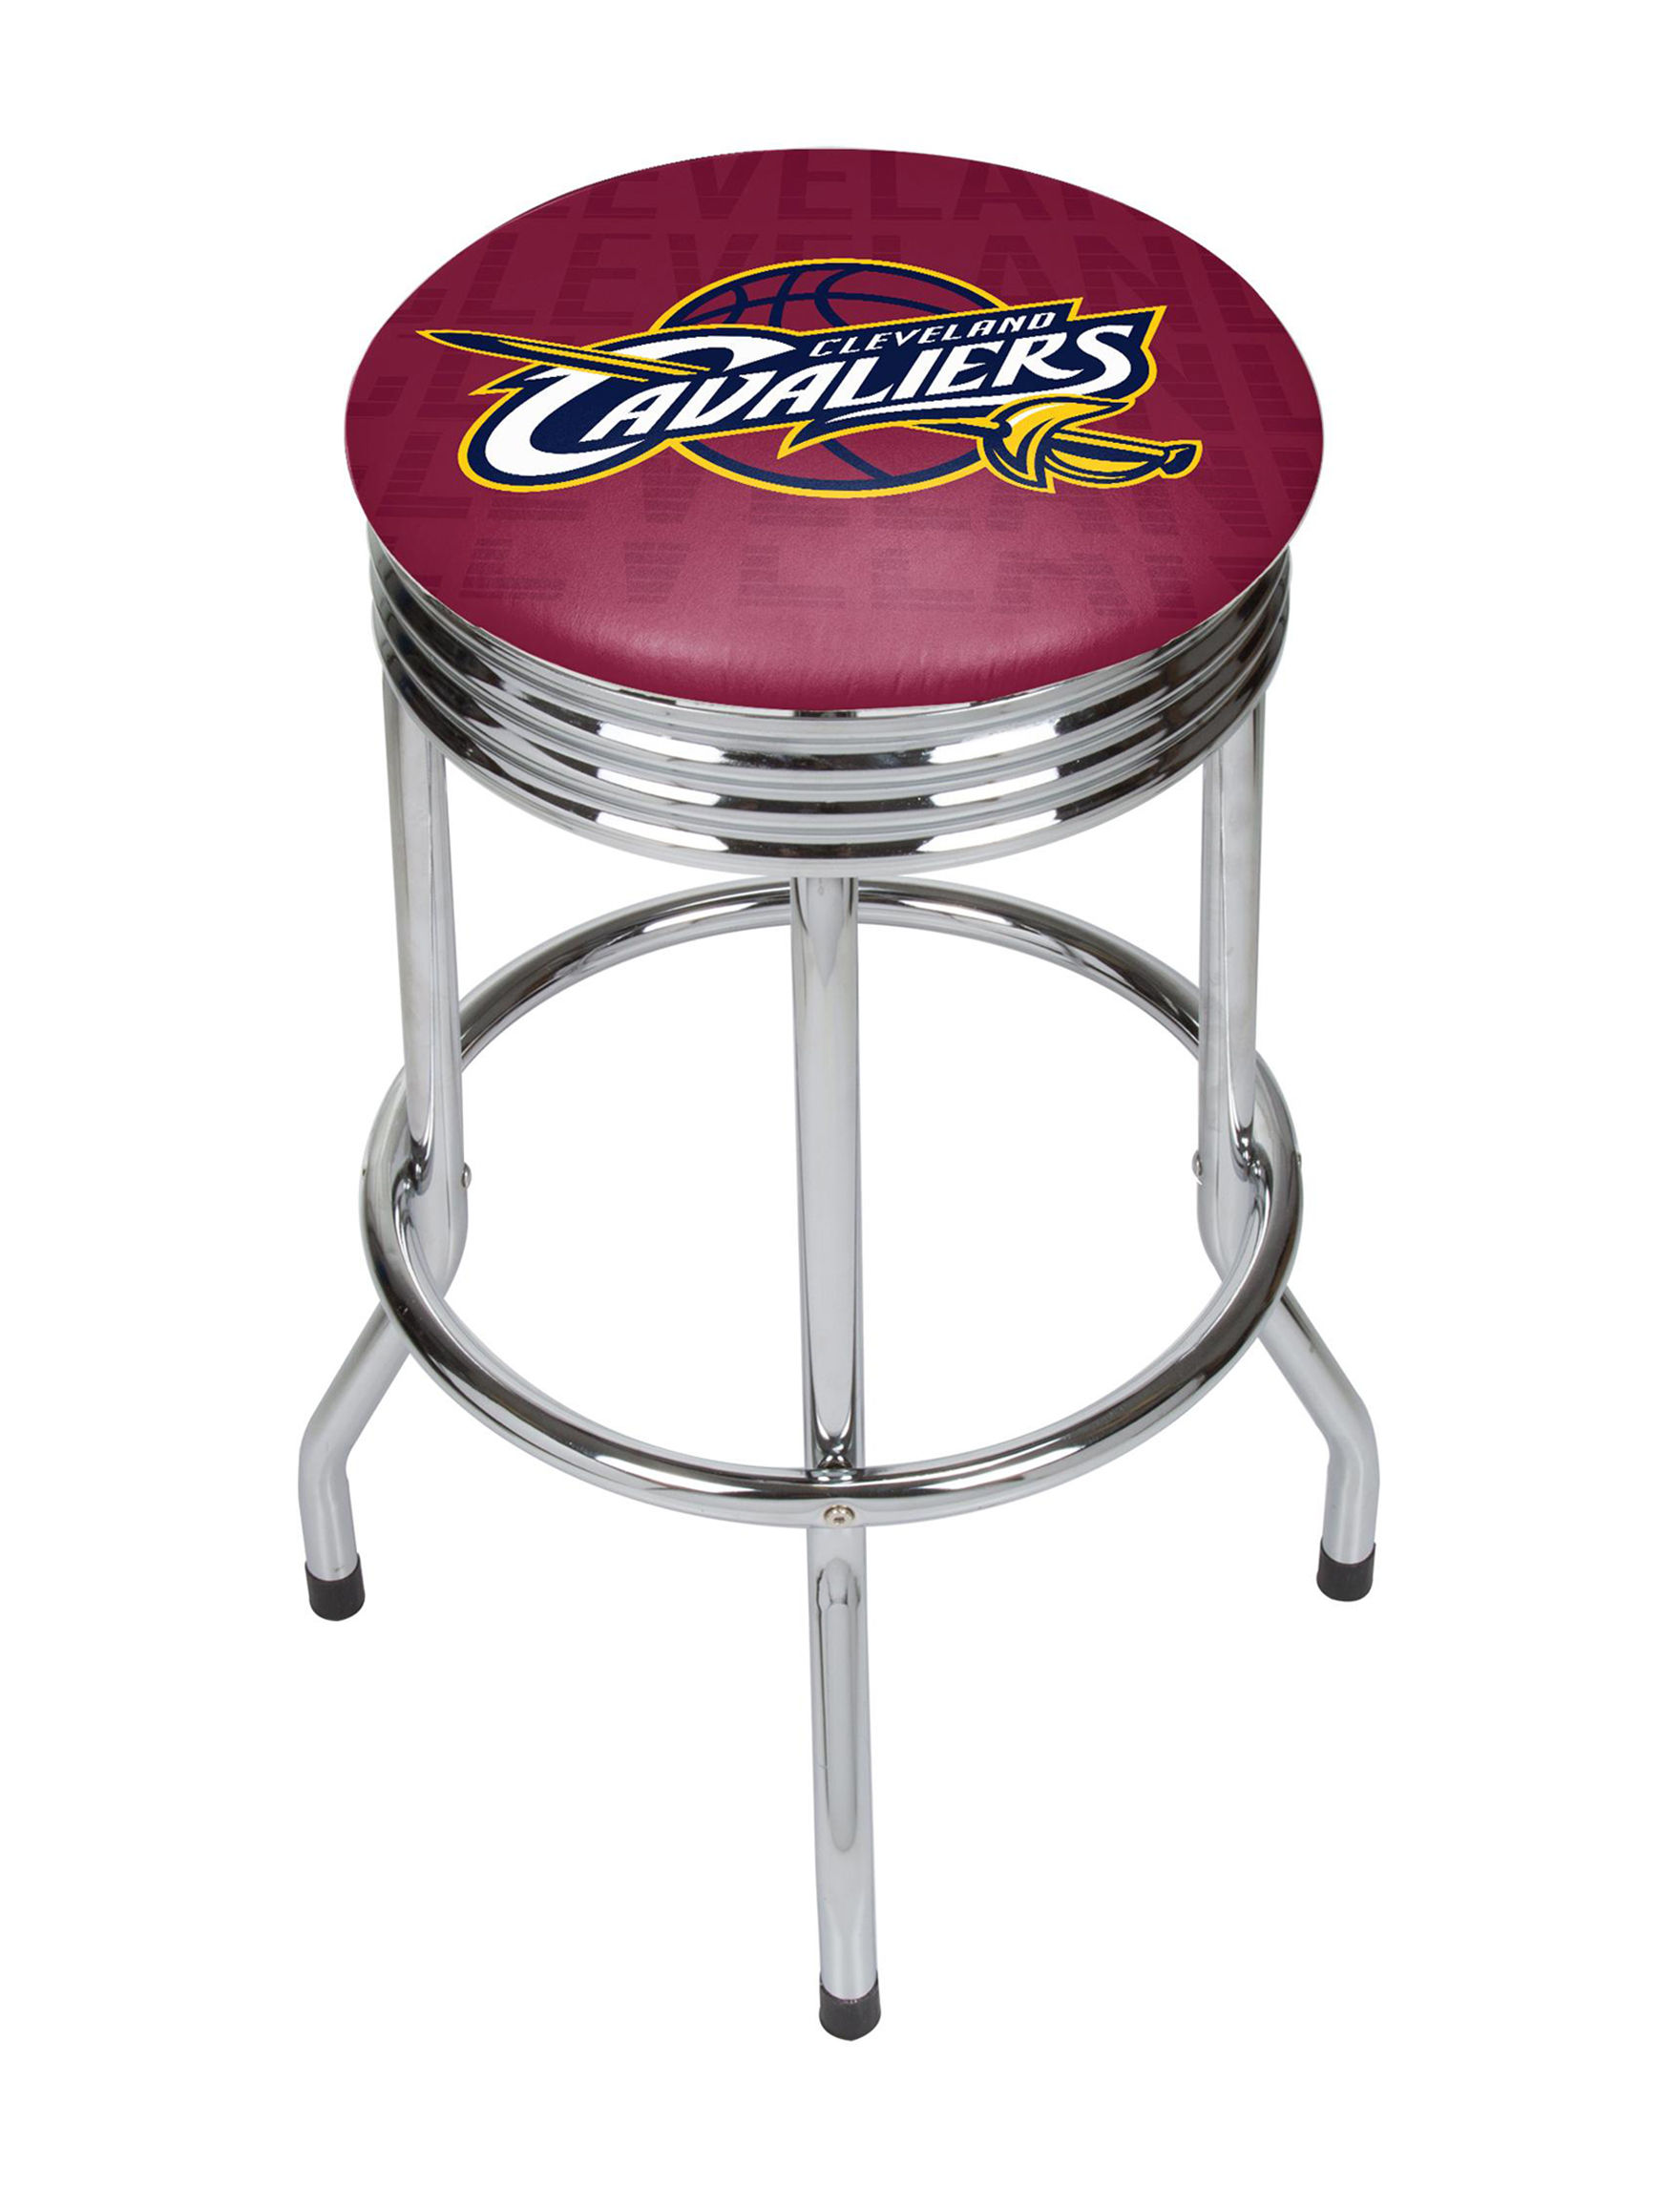 Cleveland Cavaliers Basketball Club Ribbed Bar Stool